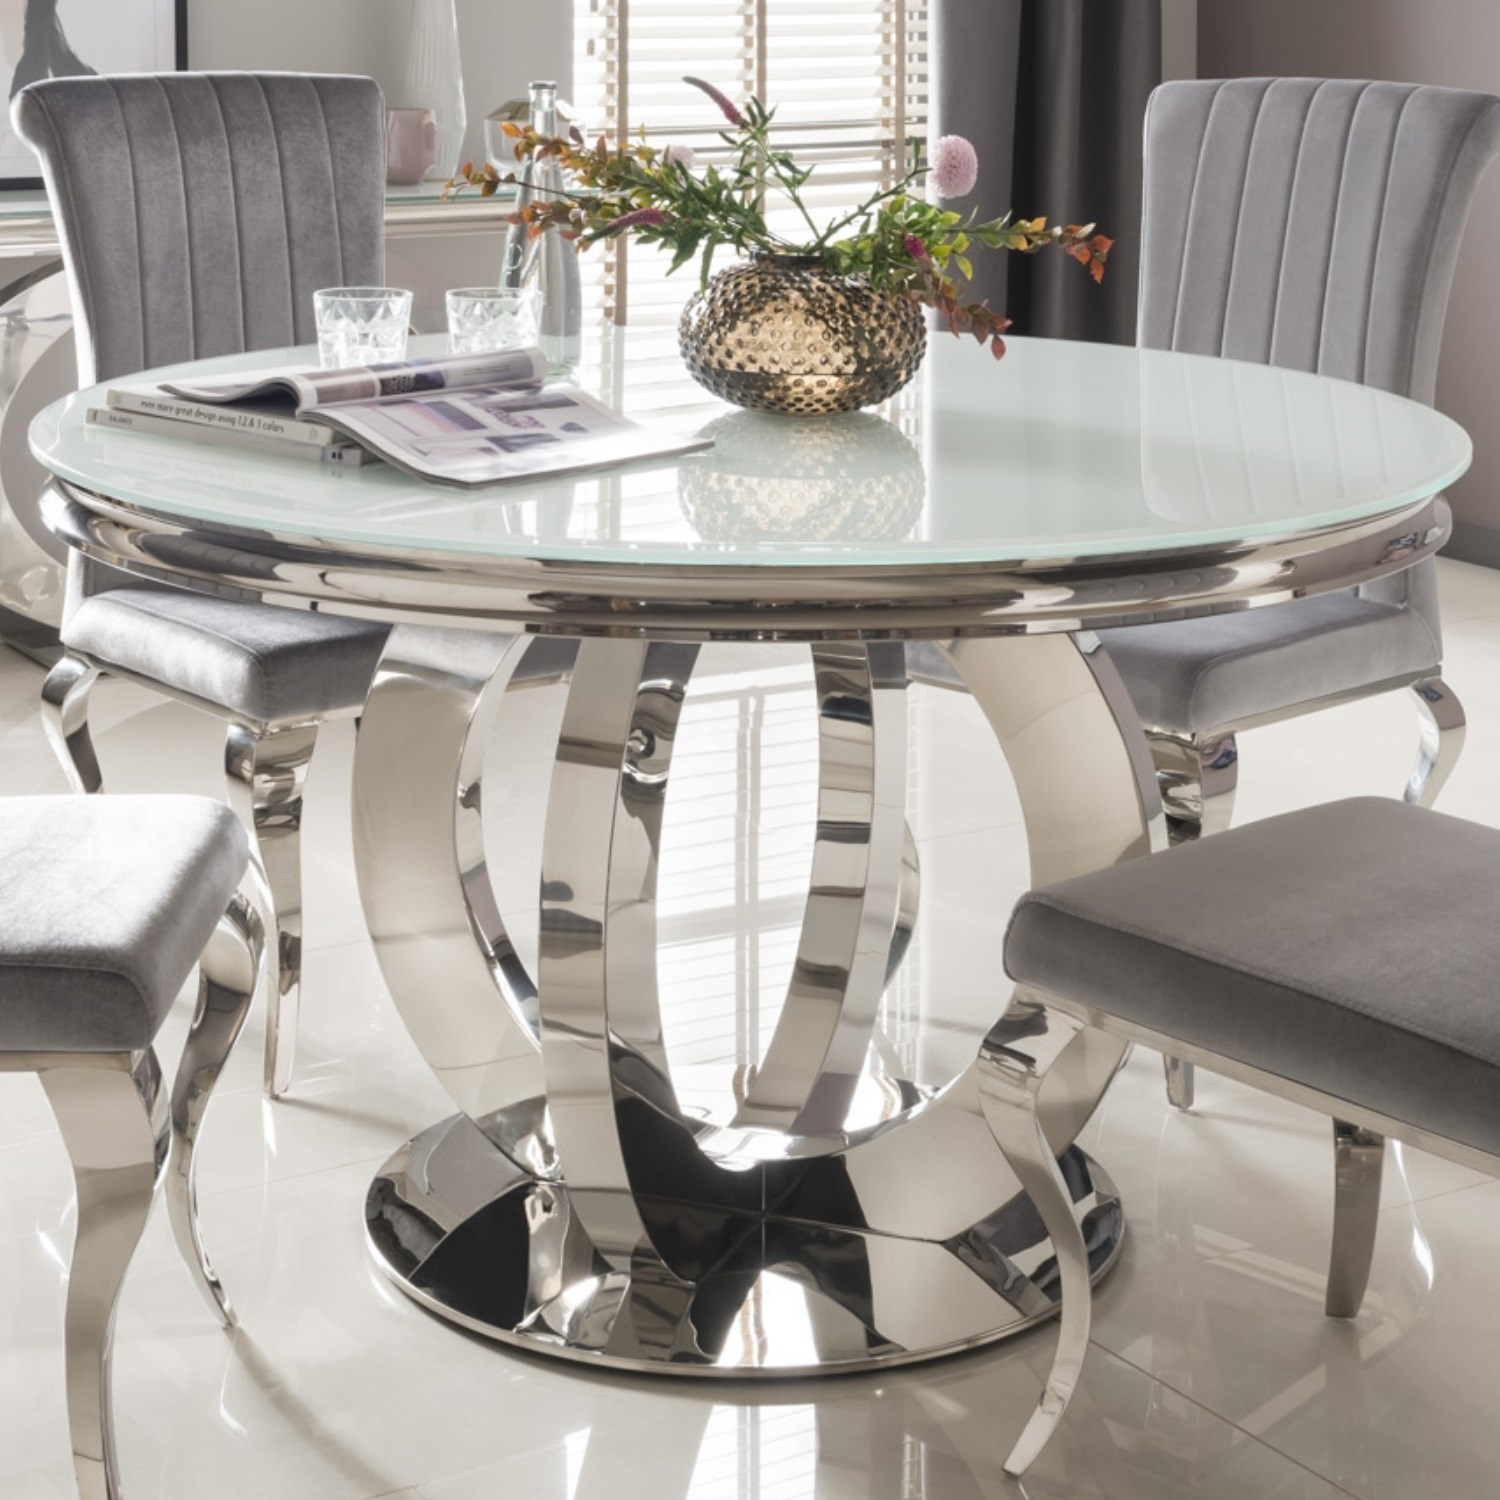 Orion Mirrored Round Dining Table with White Glass Top